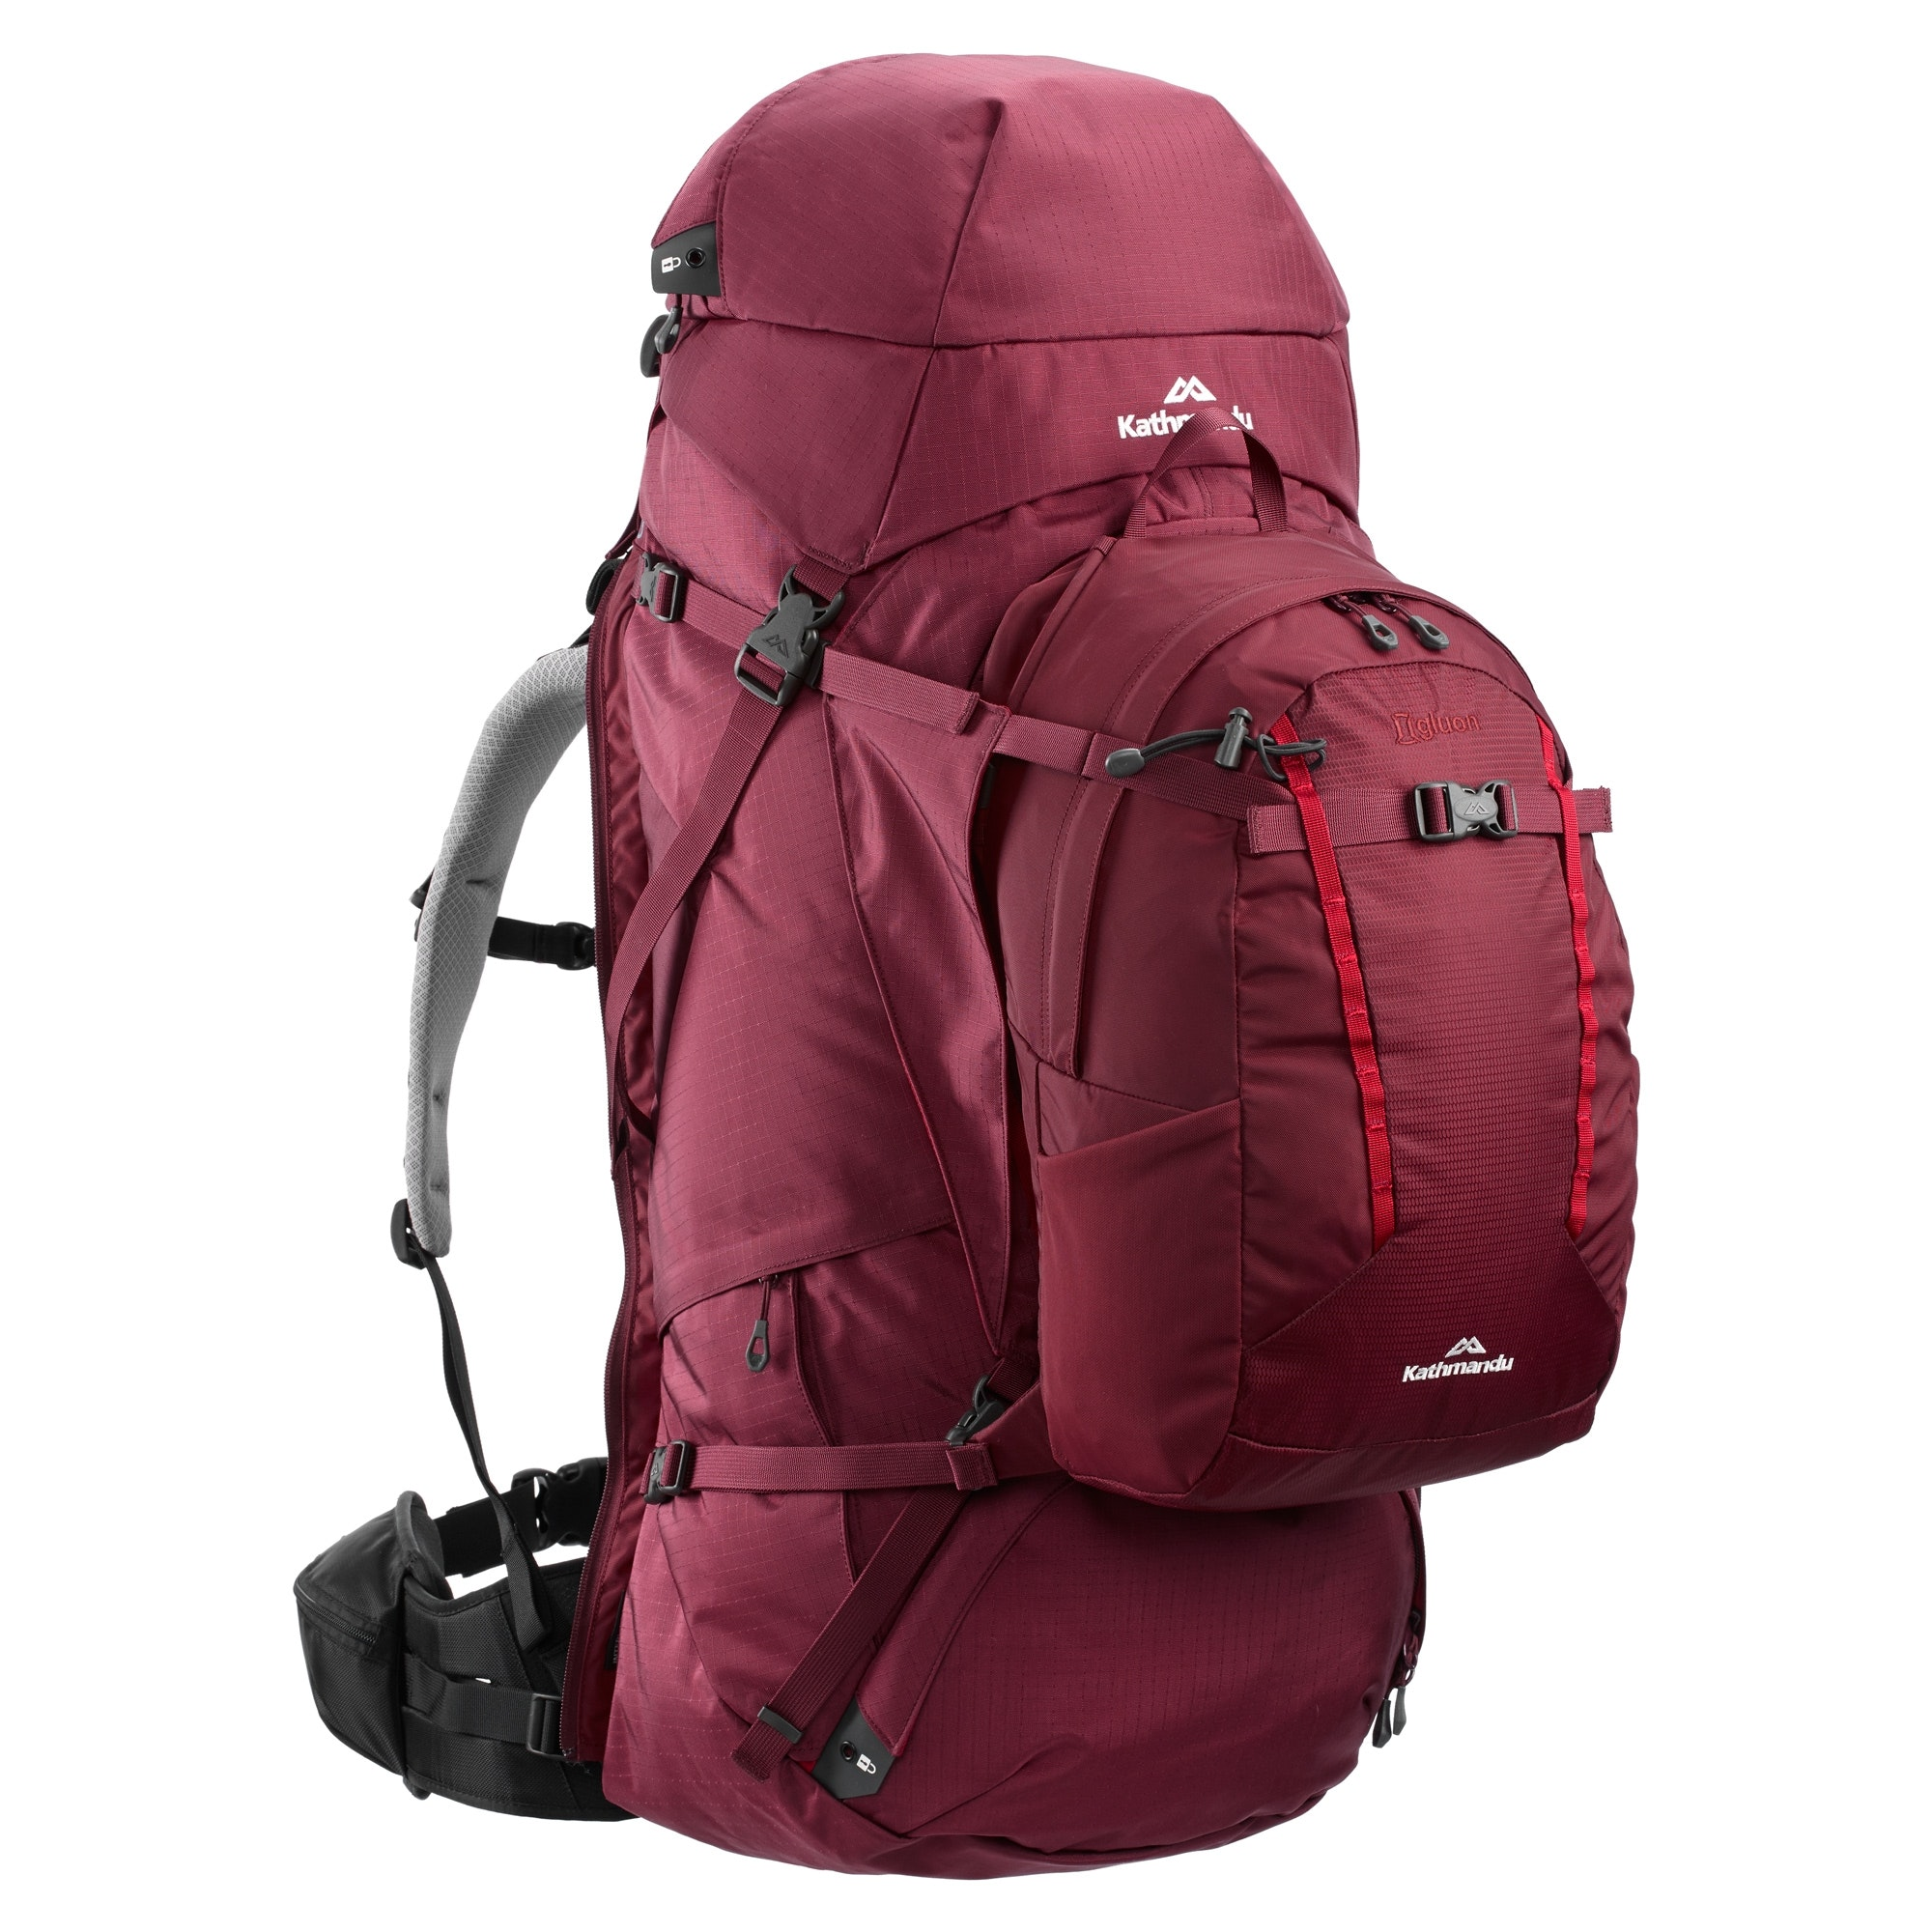 NEW-Kathmandu-Interloper-gridTECH-70L-Hiking-Travel-Backpack-Luggage-with thumbnail 14